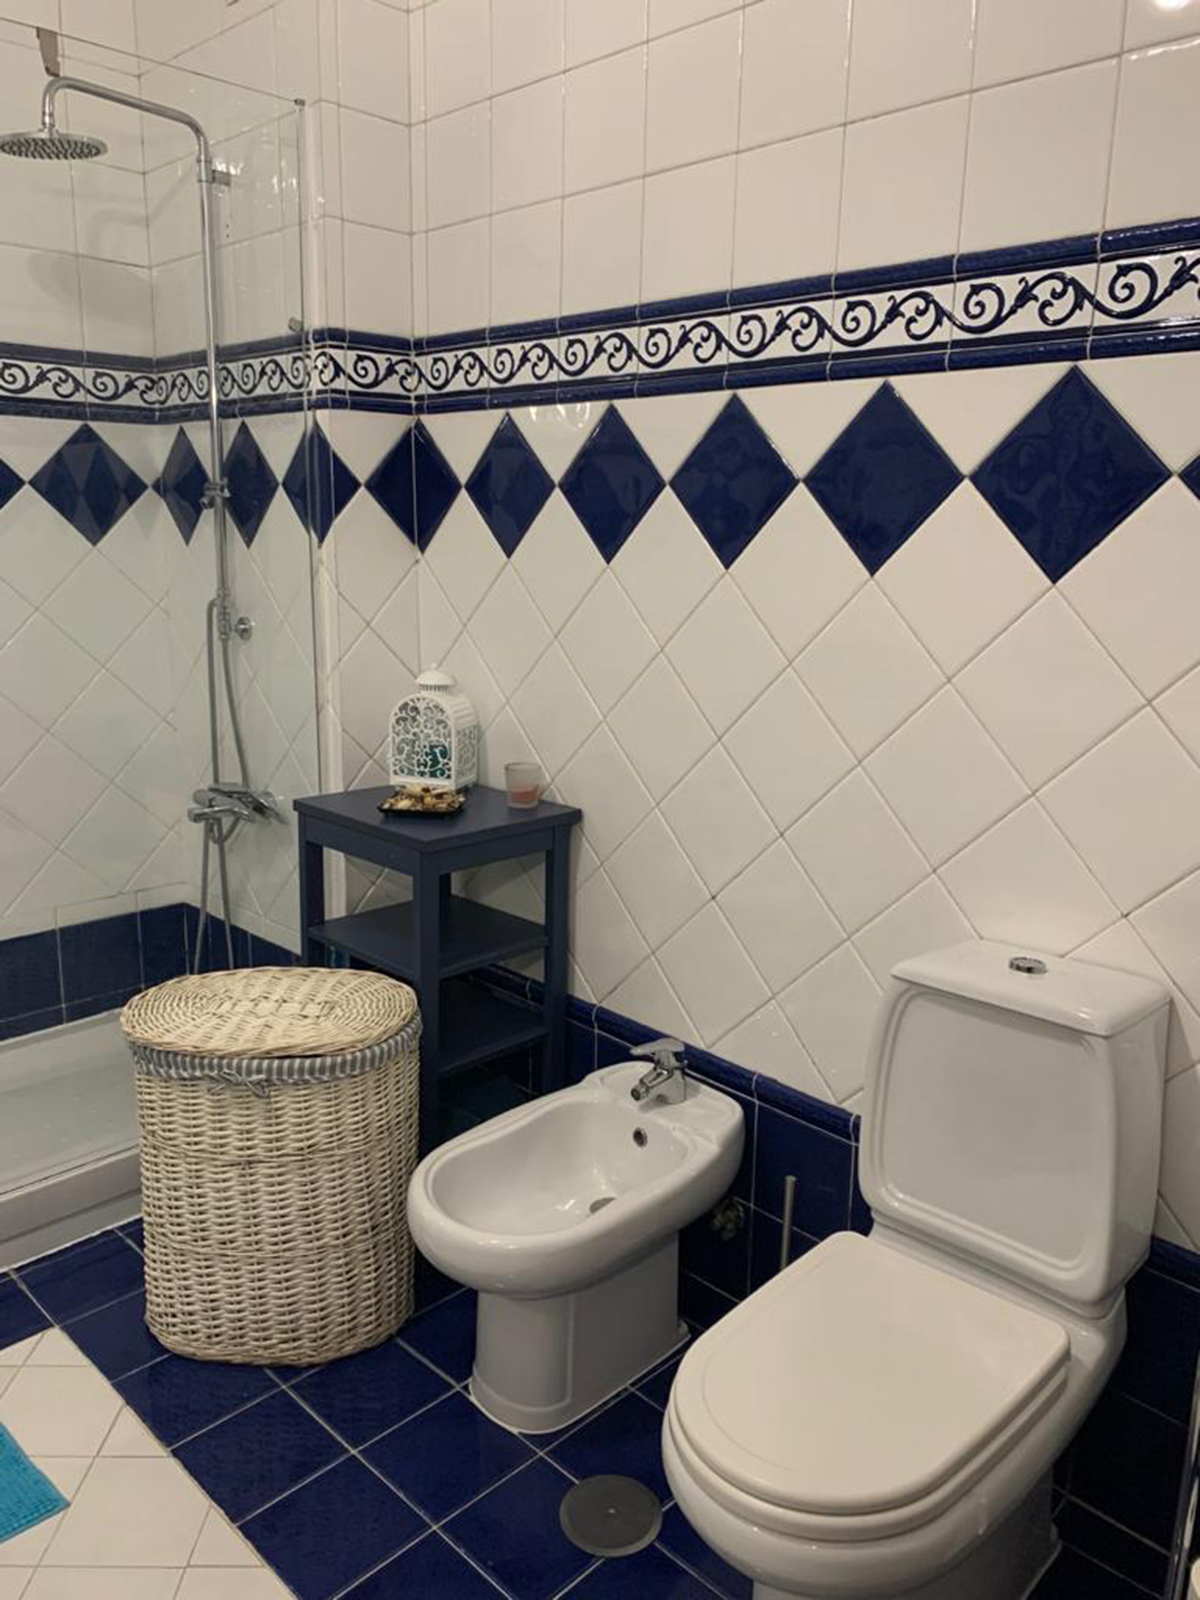 Used Apartment in Urb. Real Forte (Sacavém) – 100 m²